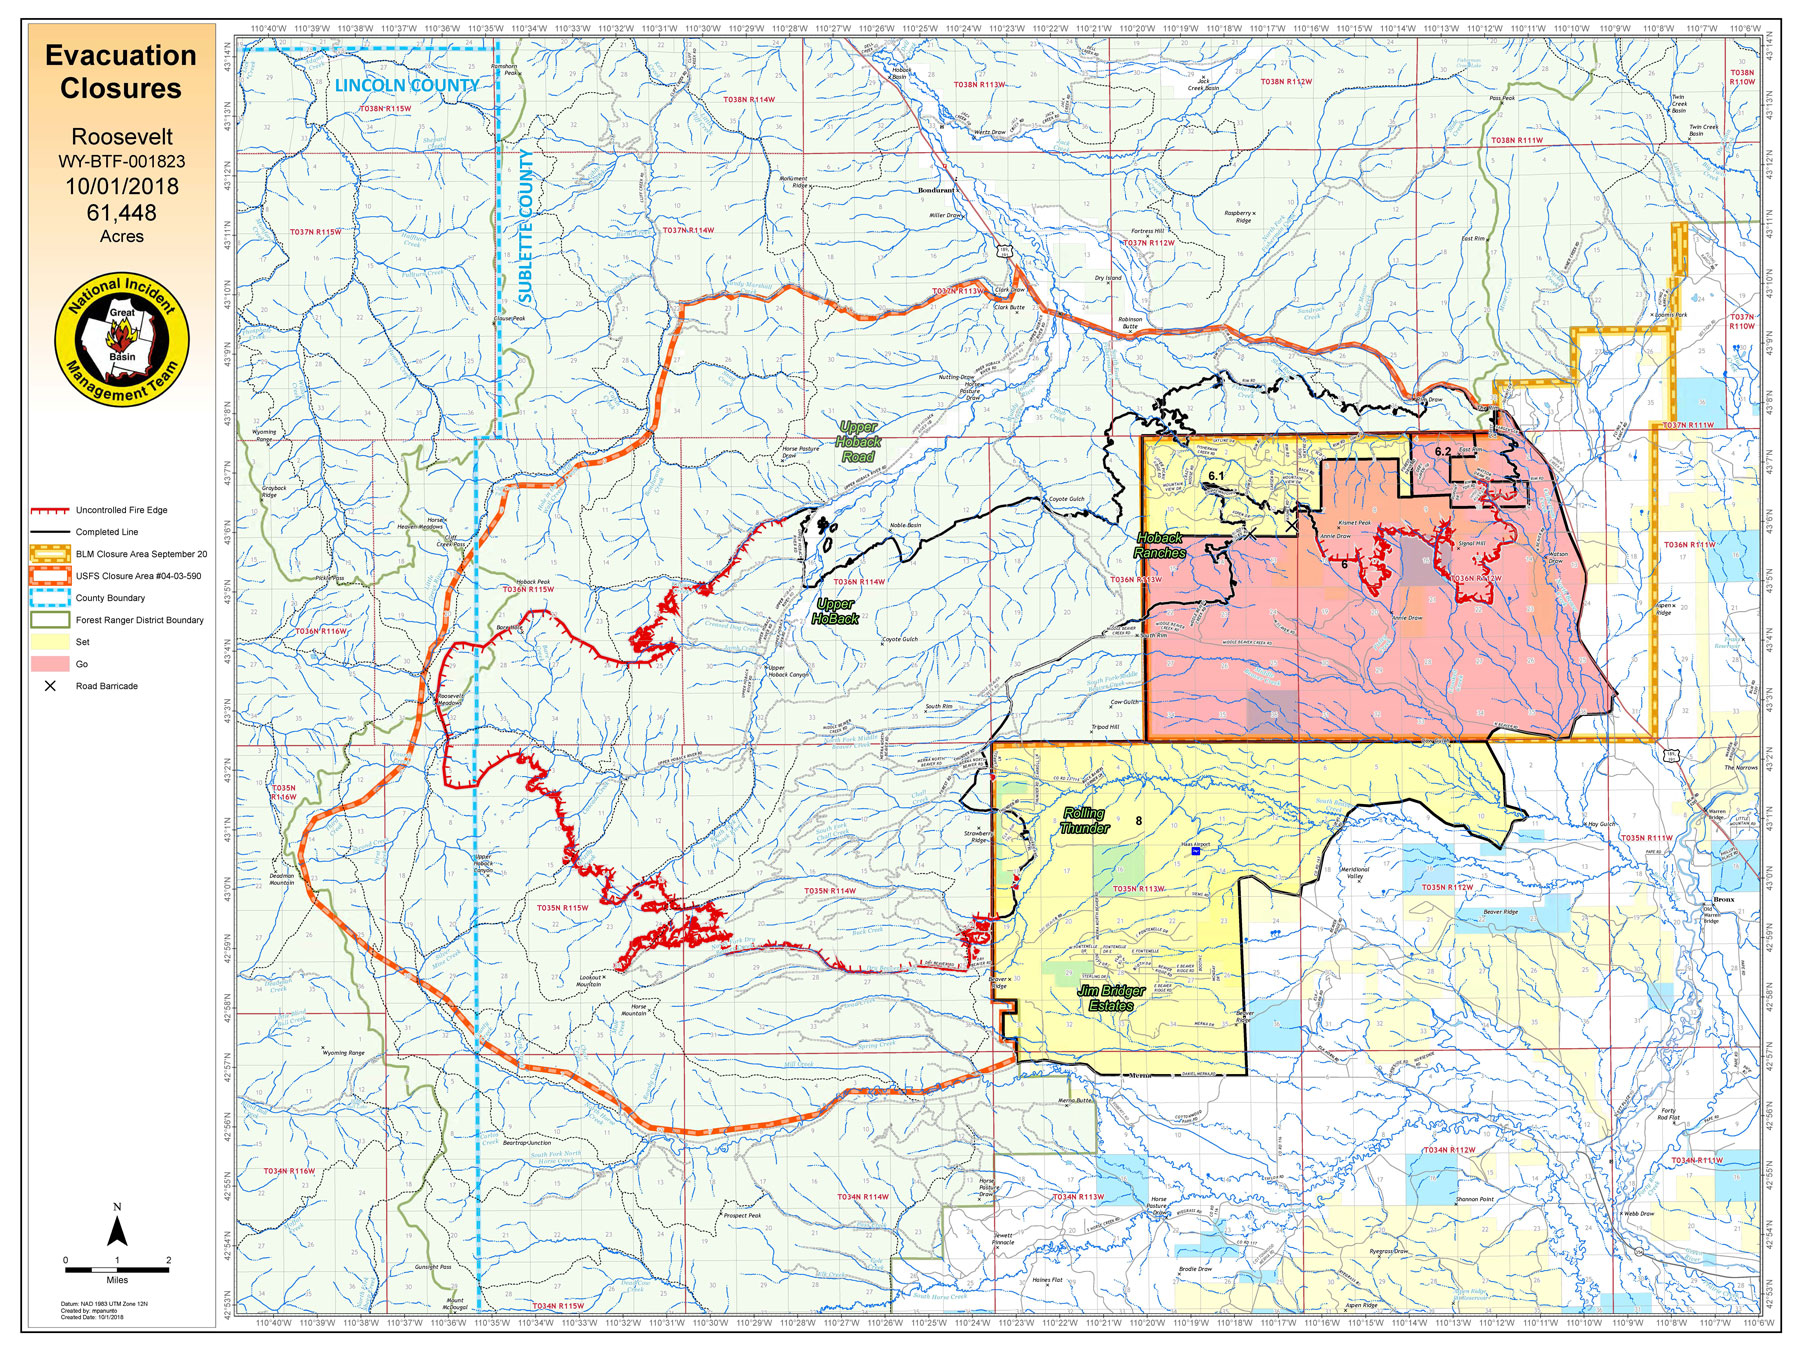 UPDATE: Roosevelt Fire Evacuation Zones Evaluated for Changes